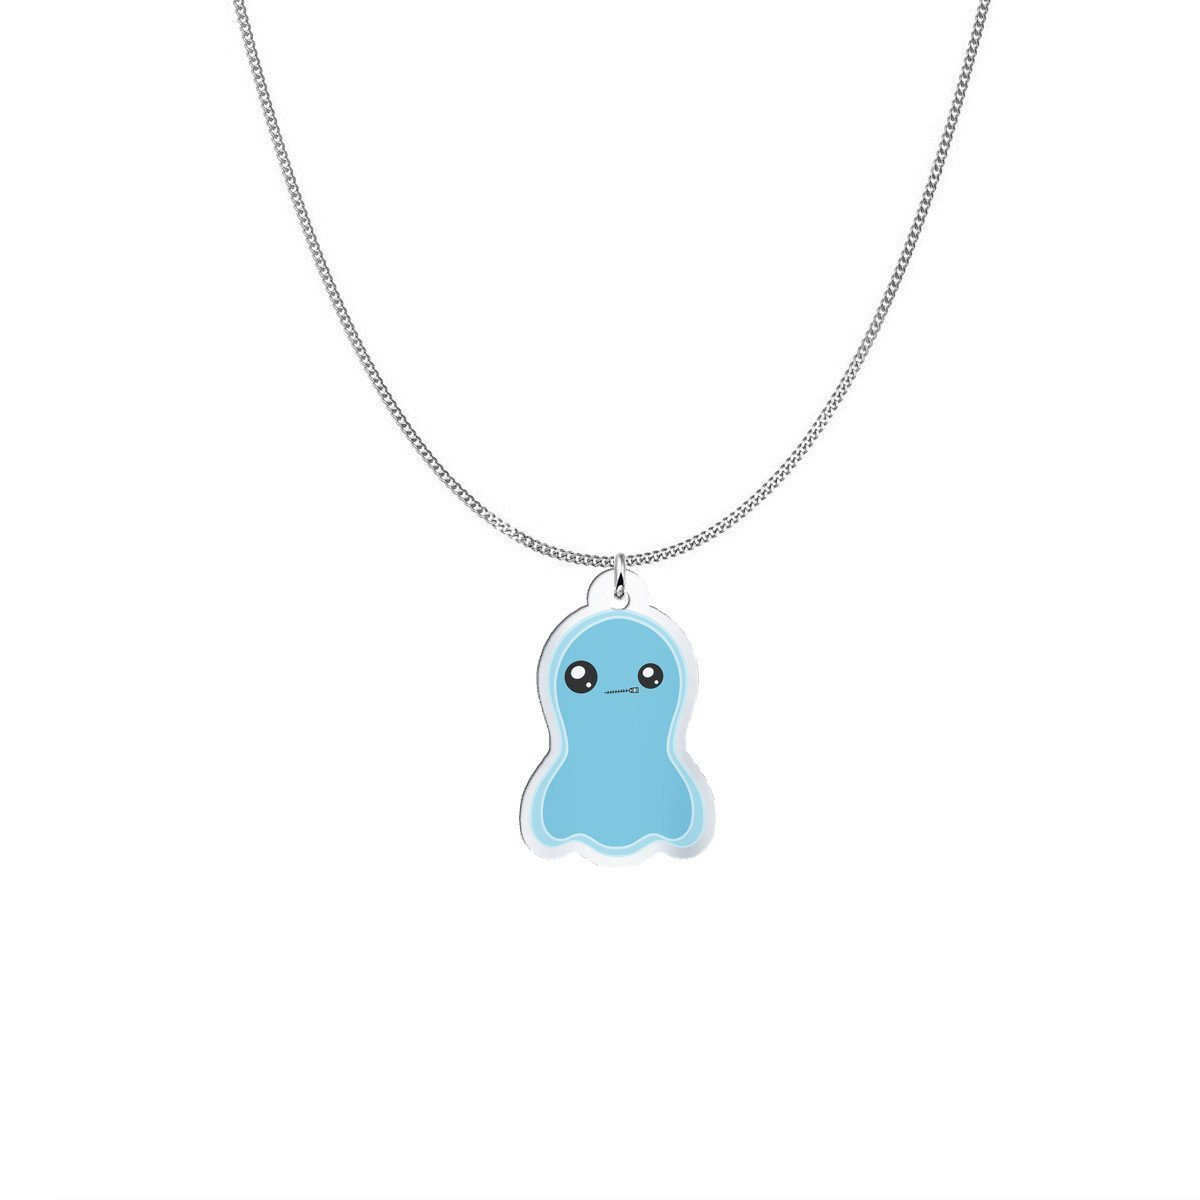 Pendant - Isa The Selective Mutism Monster Silver Necklace